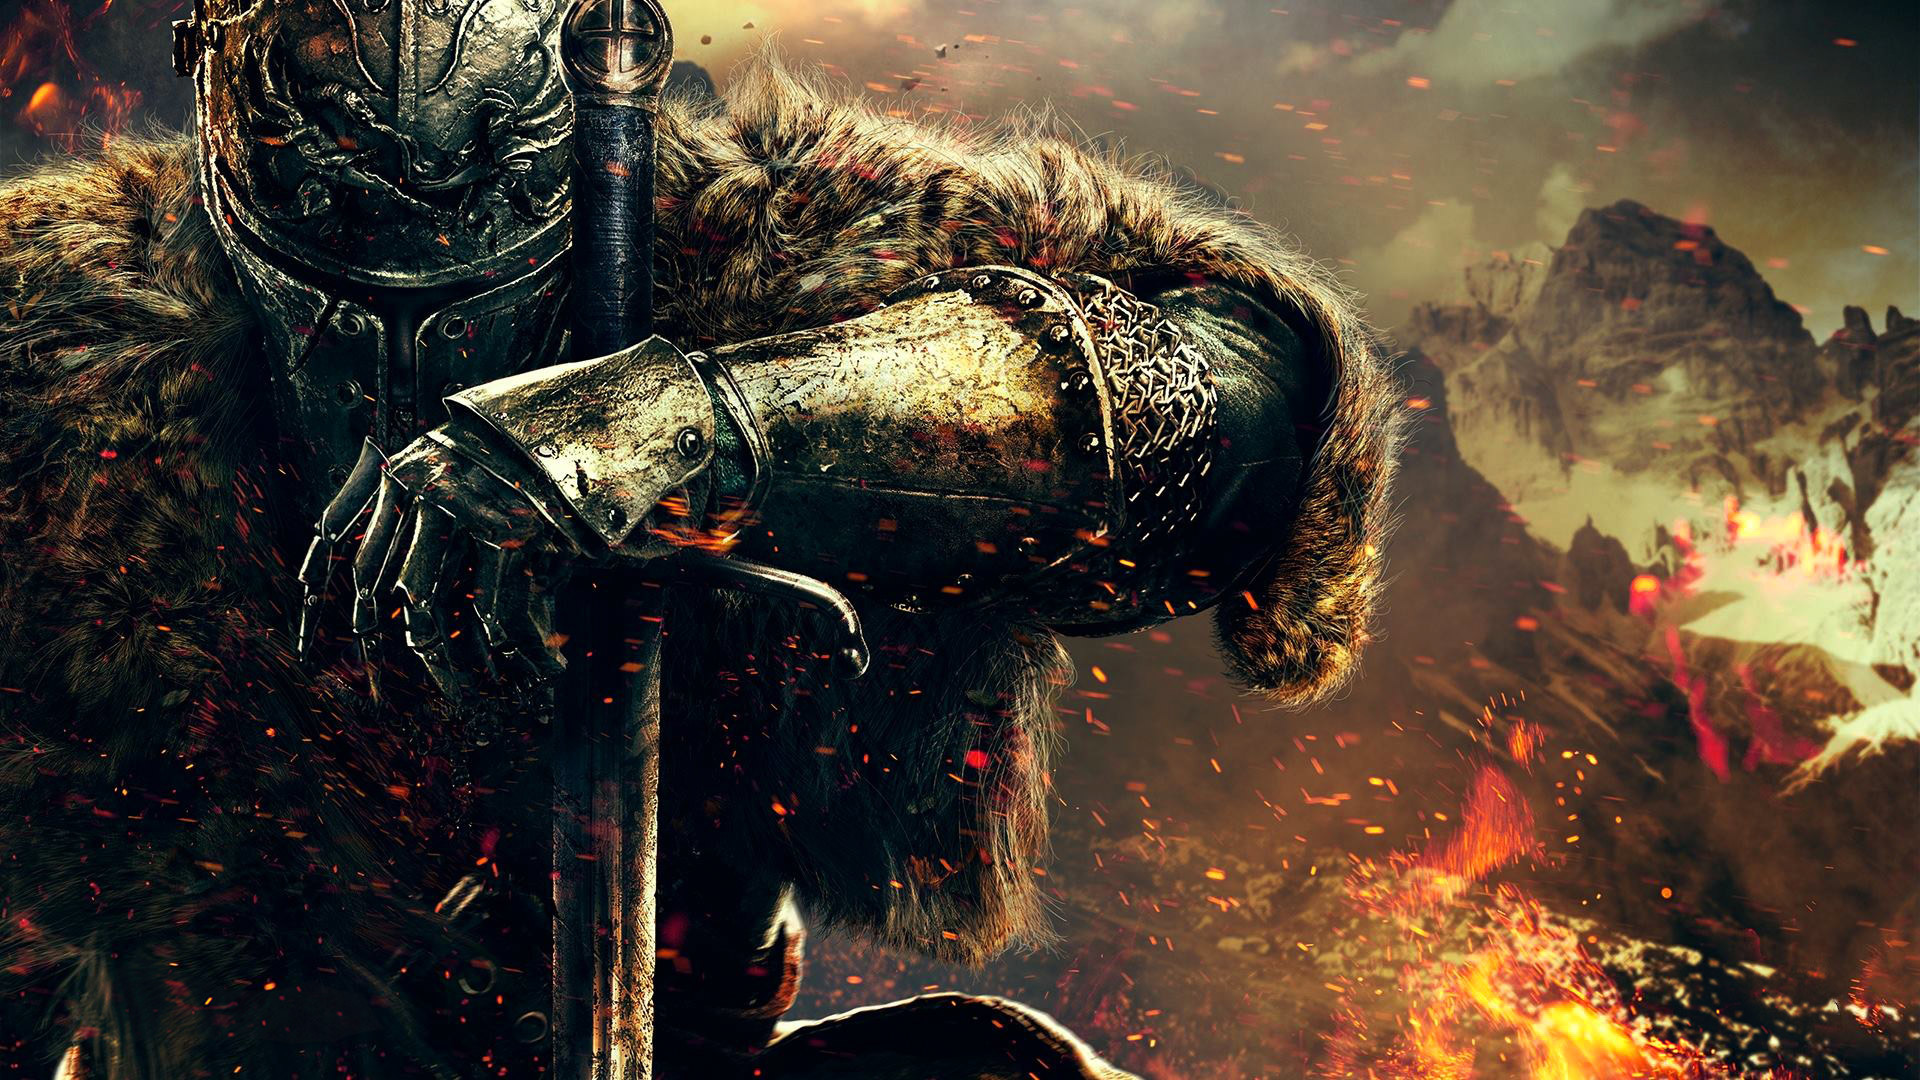 Wallpapers and pictures games 3 63021 1920x1080 dark souls ii dark 1920x1080